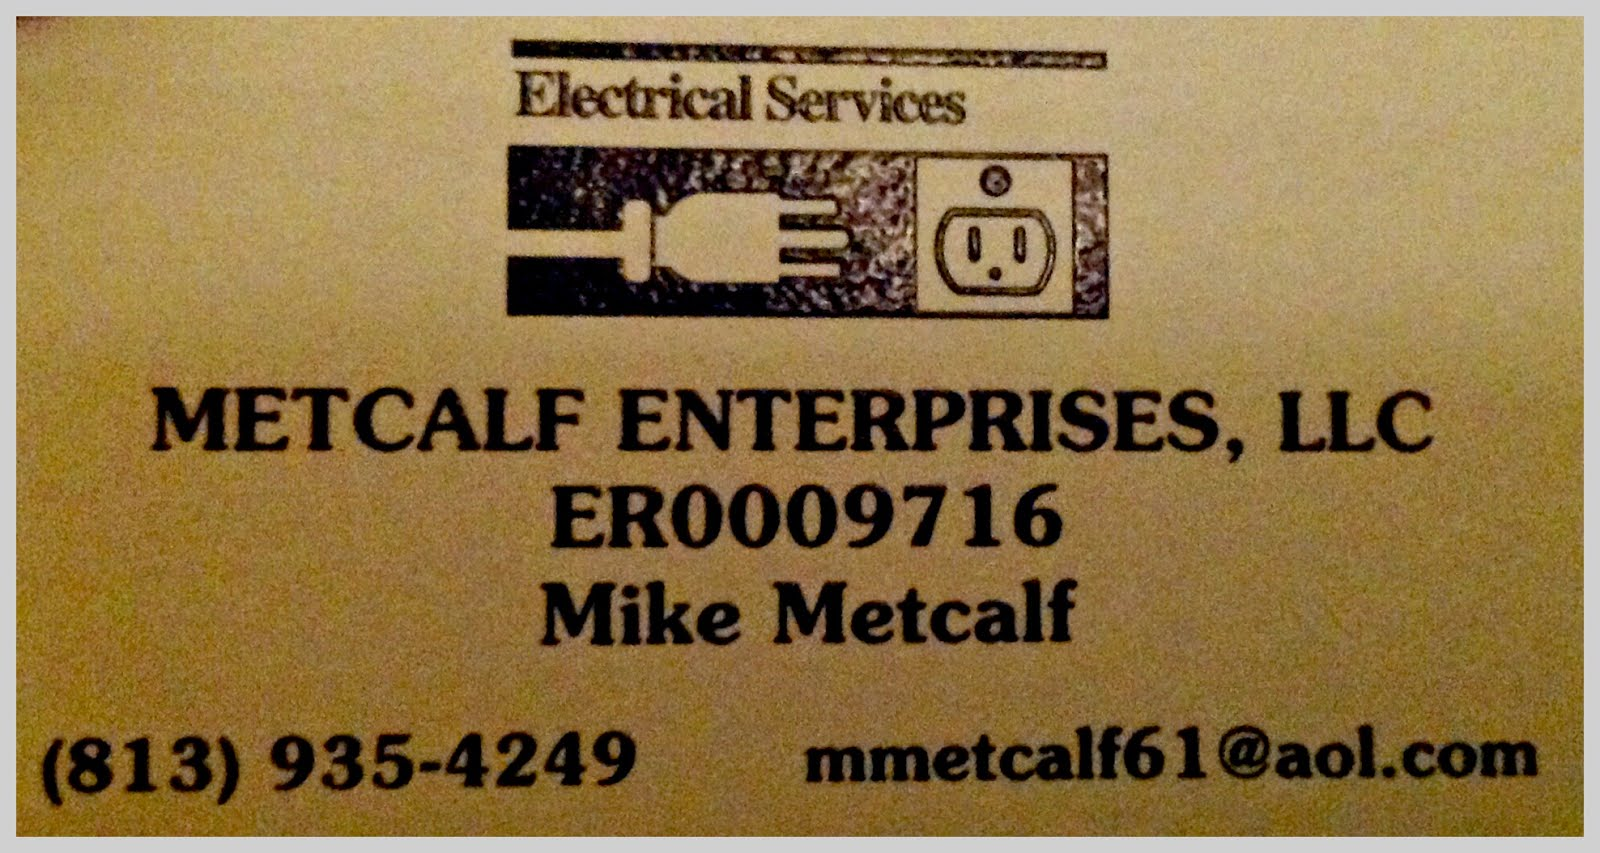 Metcalf Enterprises, LLC